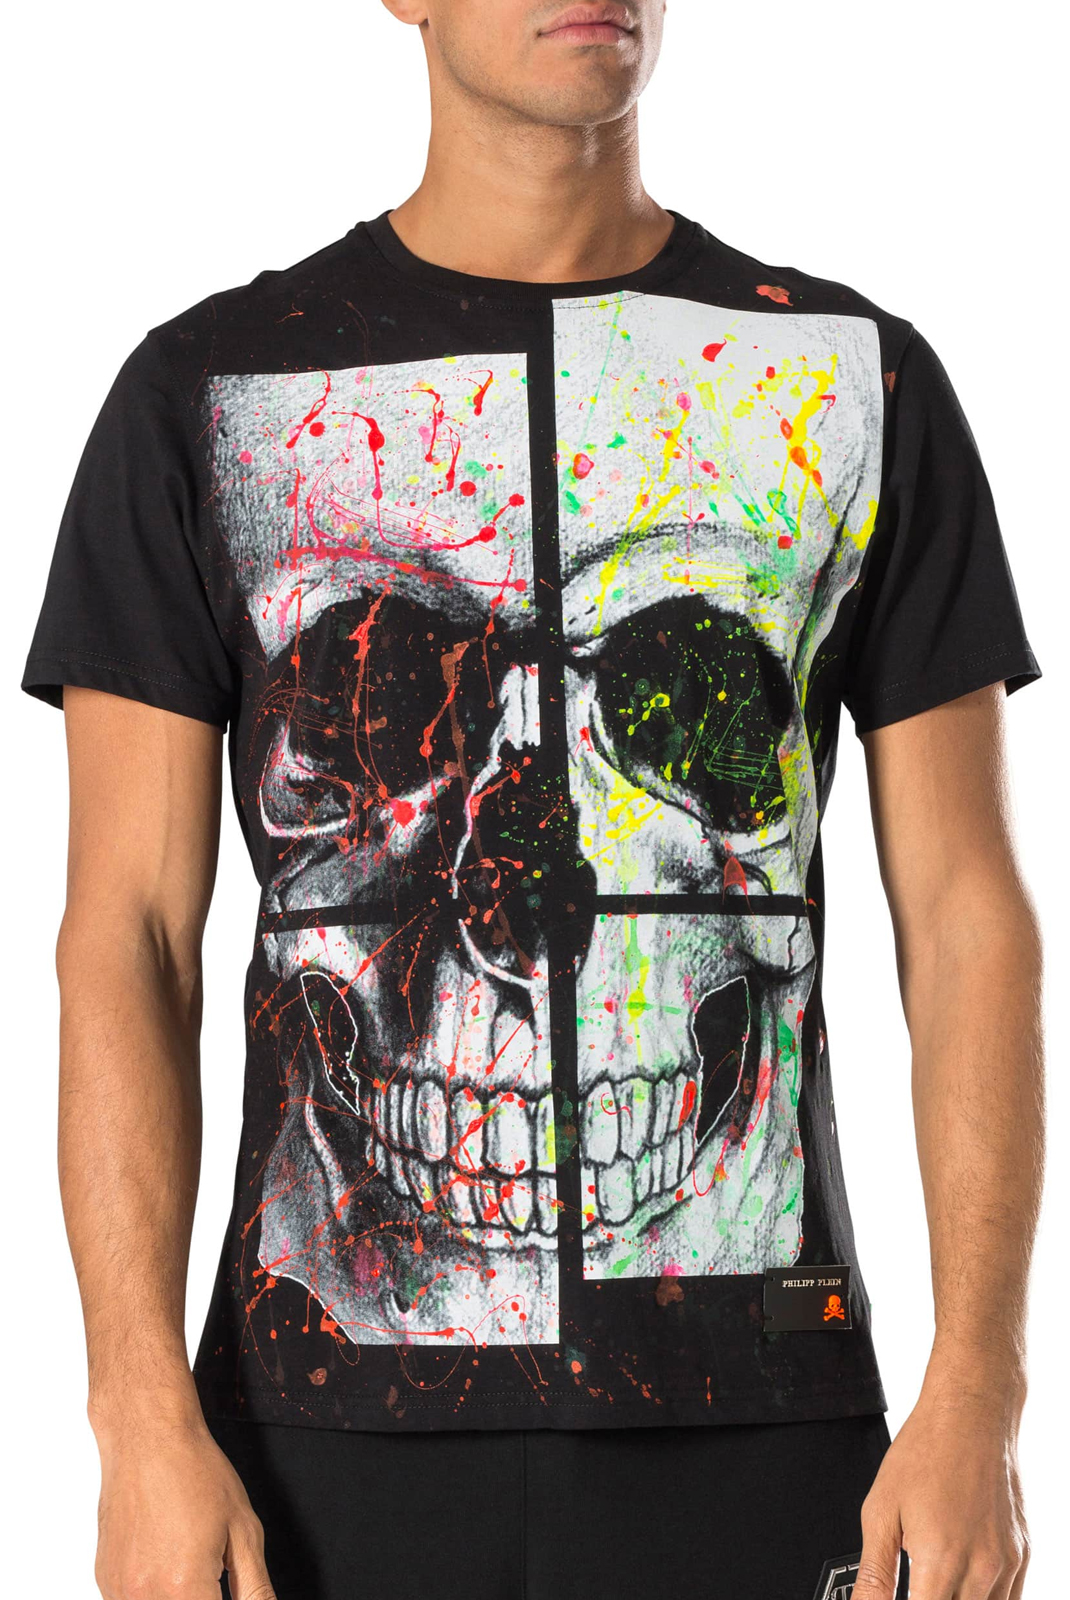 Tee-shirts  Philipp plein S18C MTK1802 HARD 02 BLACK